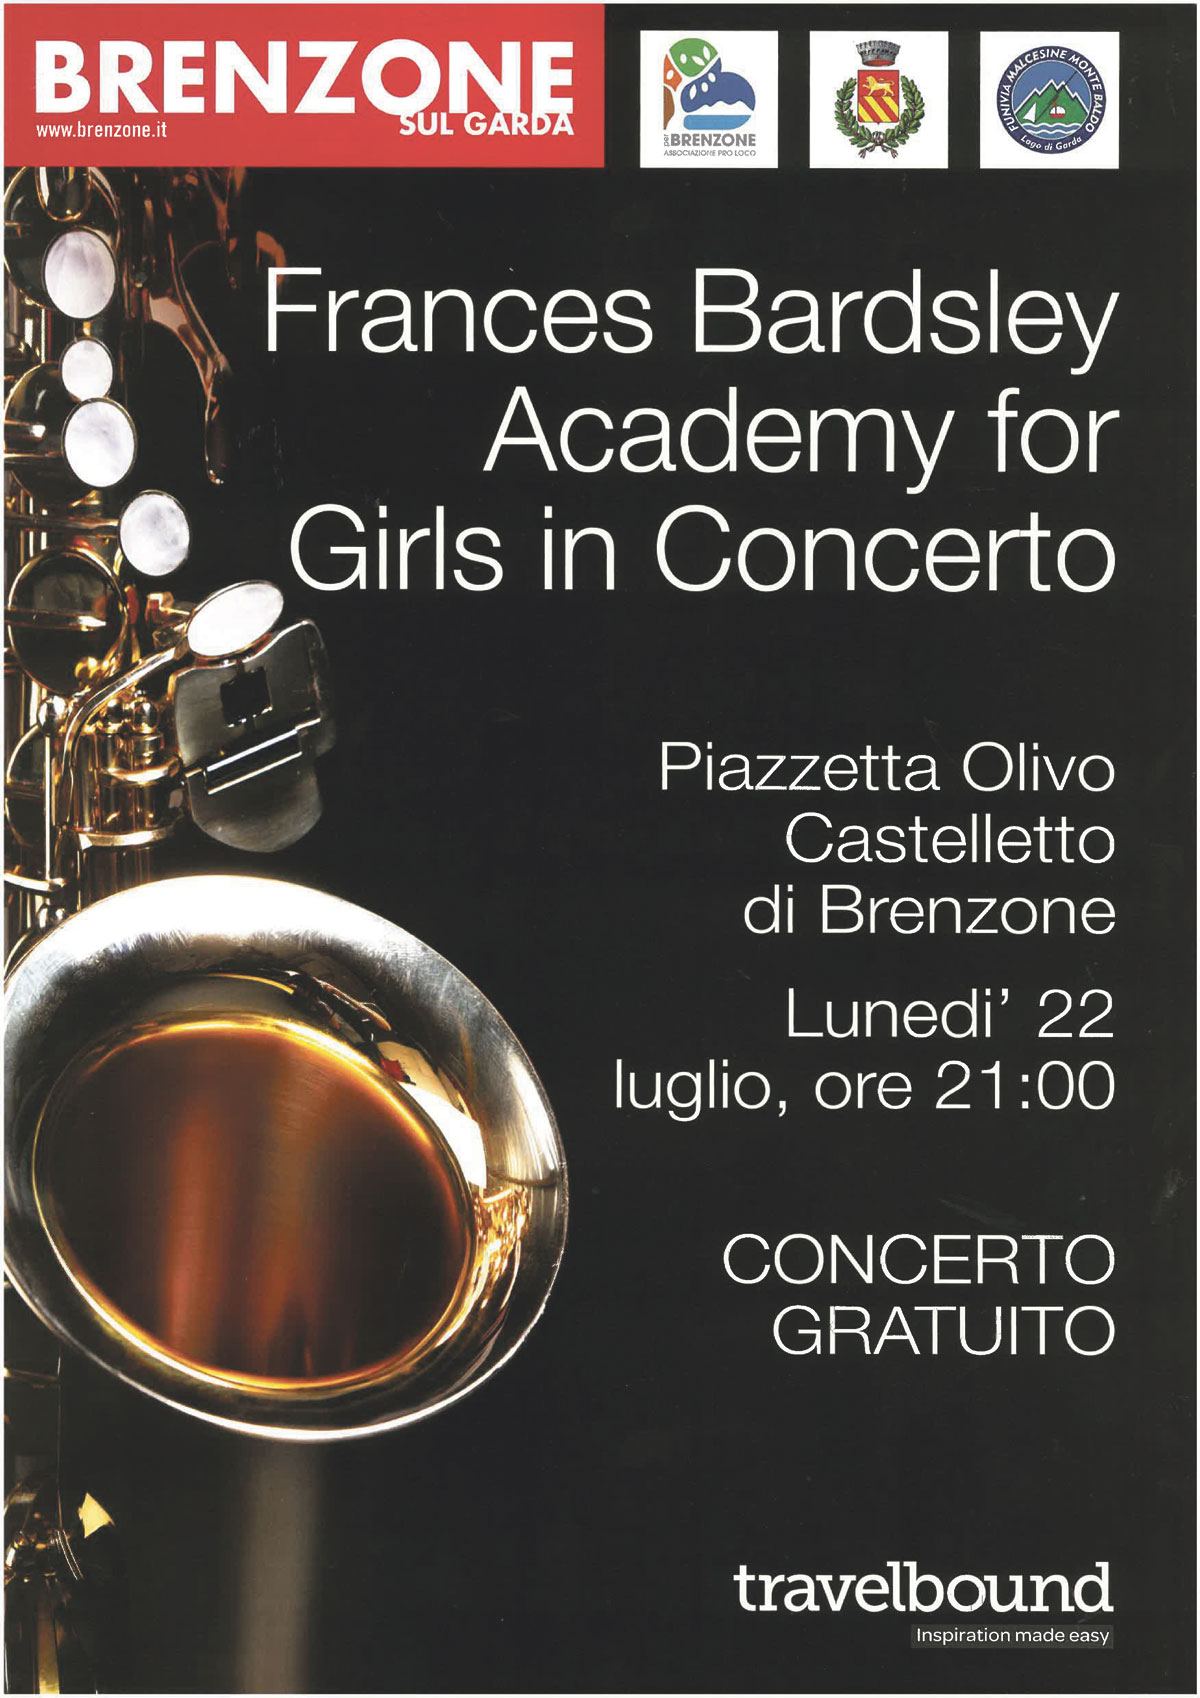 Franches Bardsley Academy for Girls in Concerto: 22.07.2019